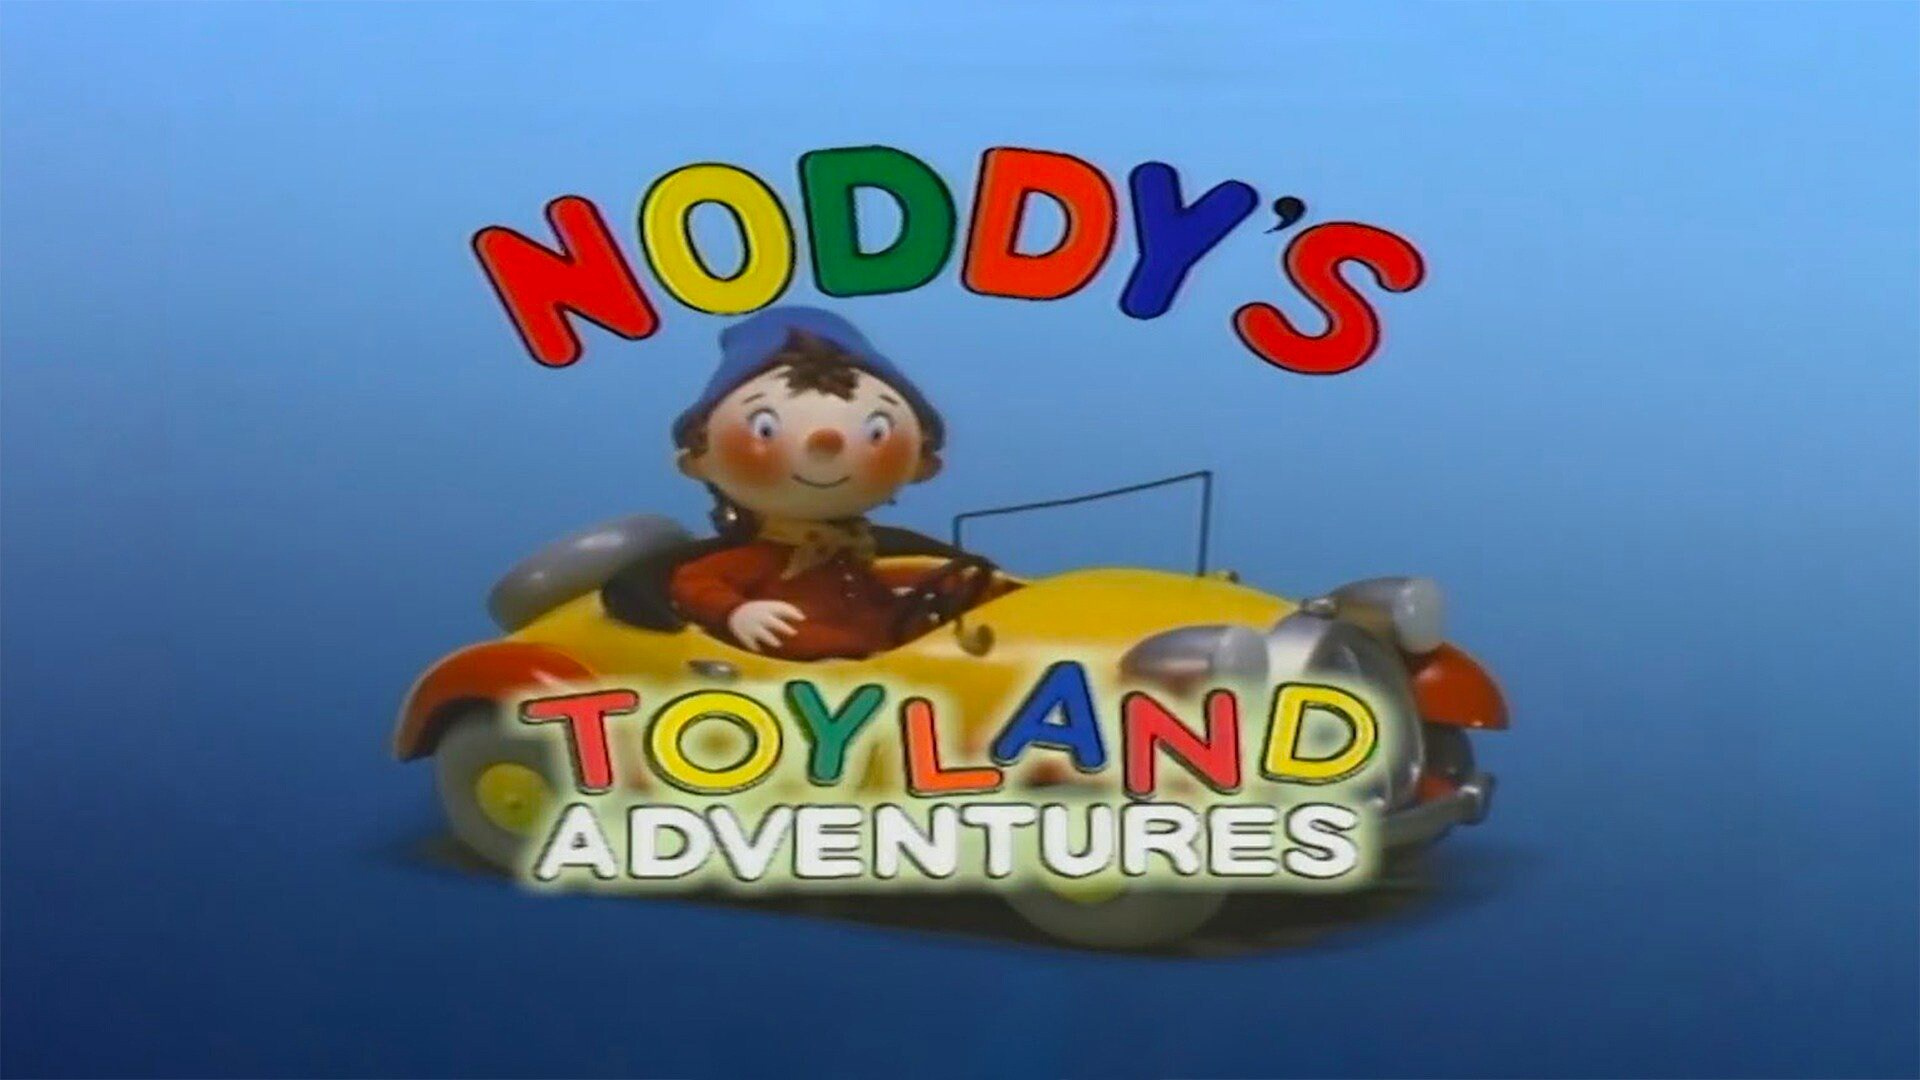 Noddy Is Far Too Busy